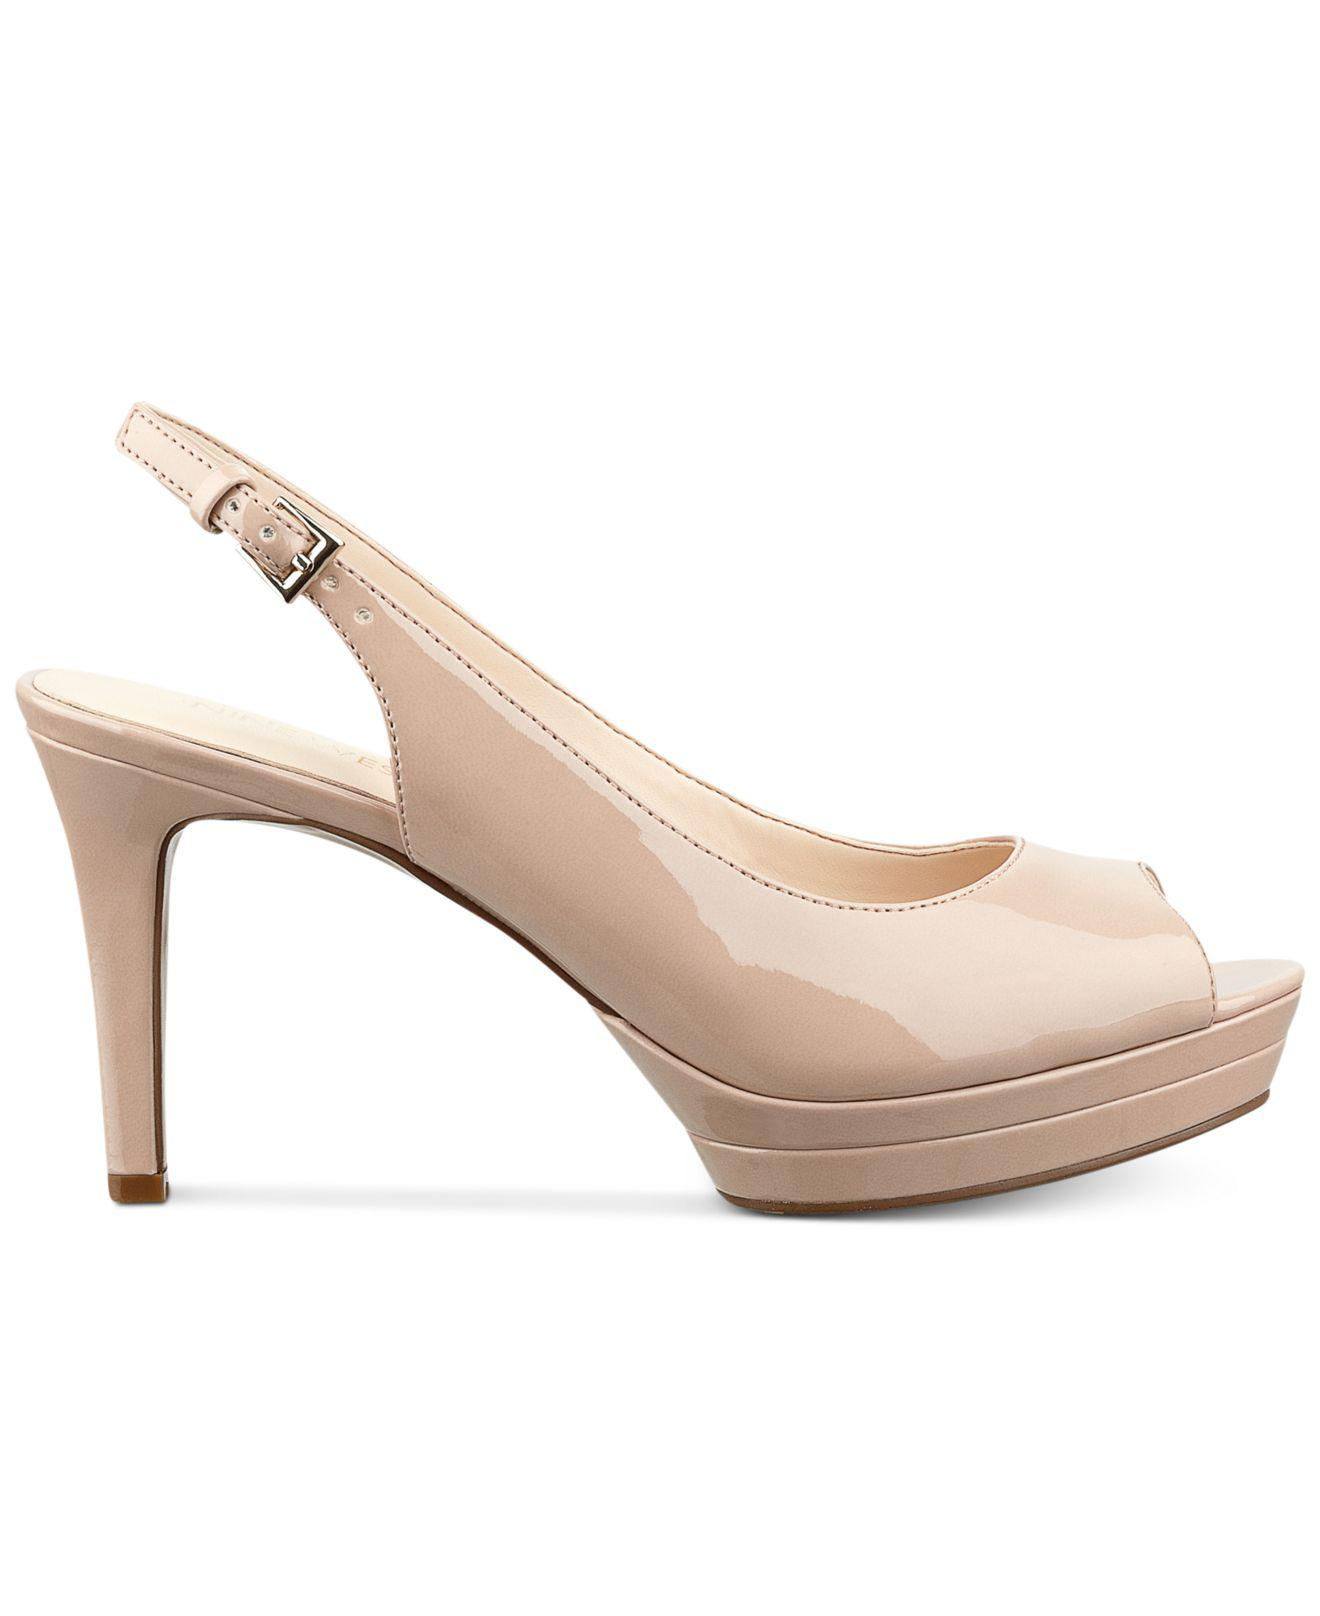 fbe0bff9033 Lyst - Nine West Able Mid-heel Pumps in Natural